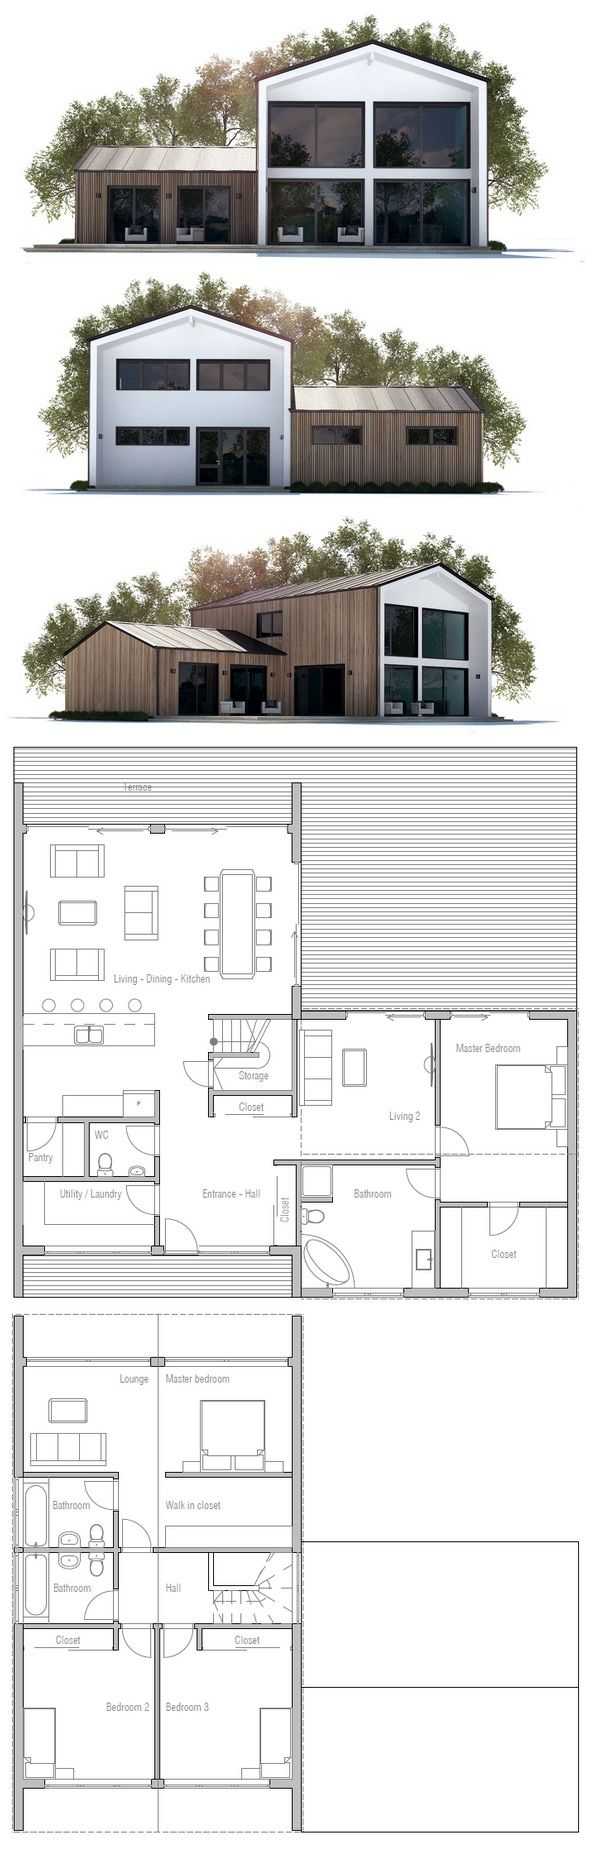 Nice plan to start with: 2-car garage for low-rise with mudroom entry, expand kitchen into pantry+bath, under stairs is new pantry.